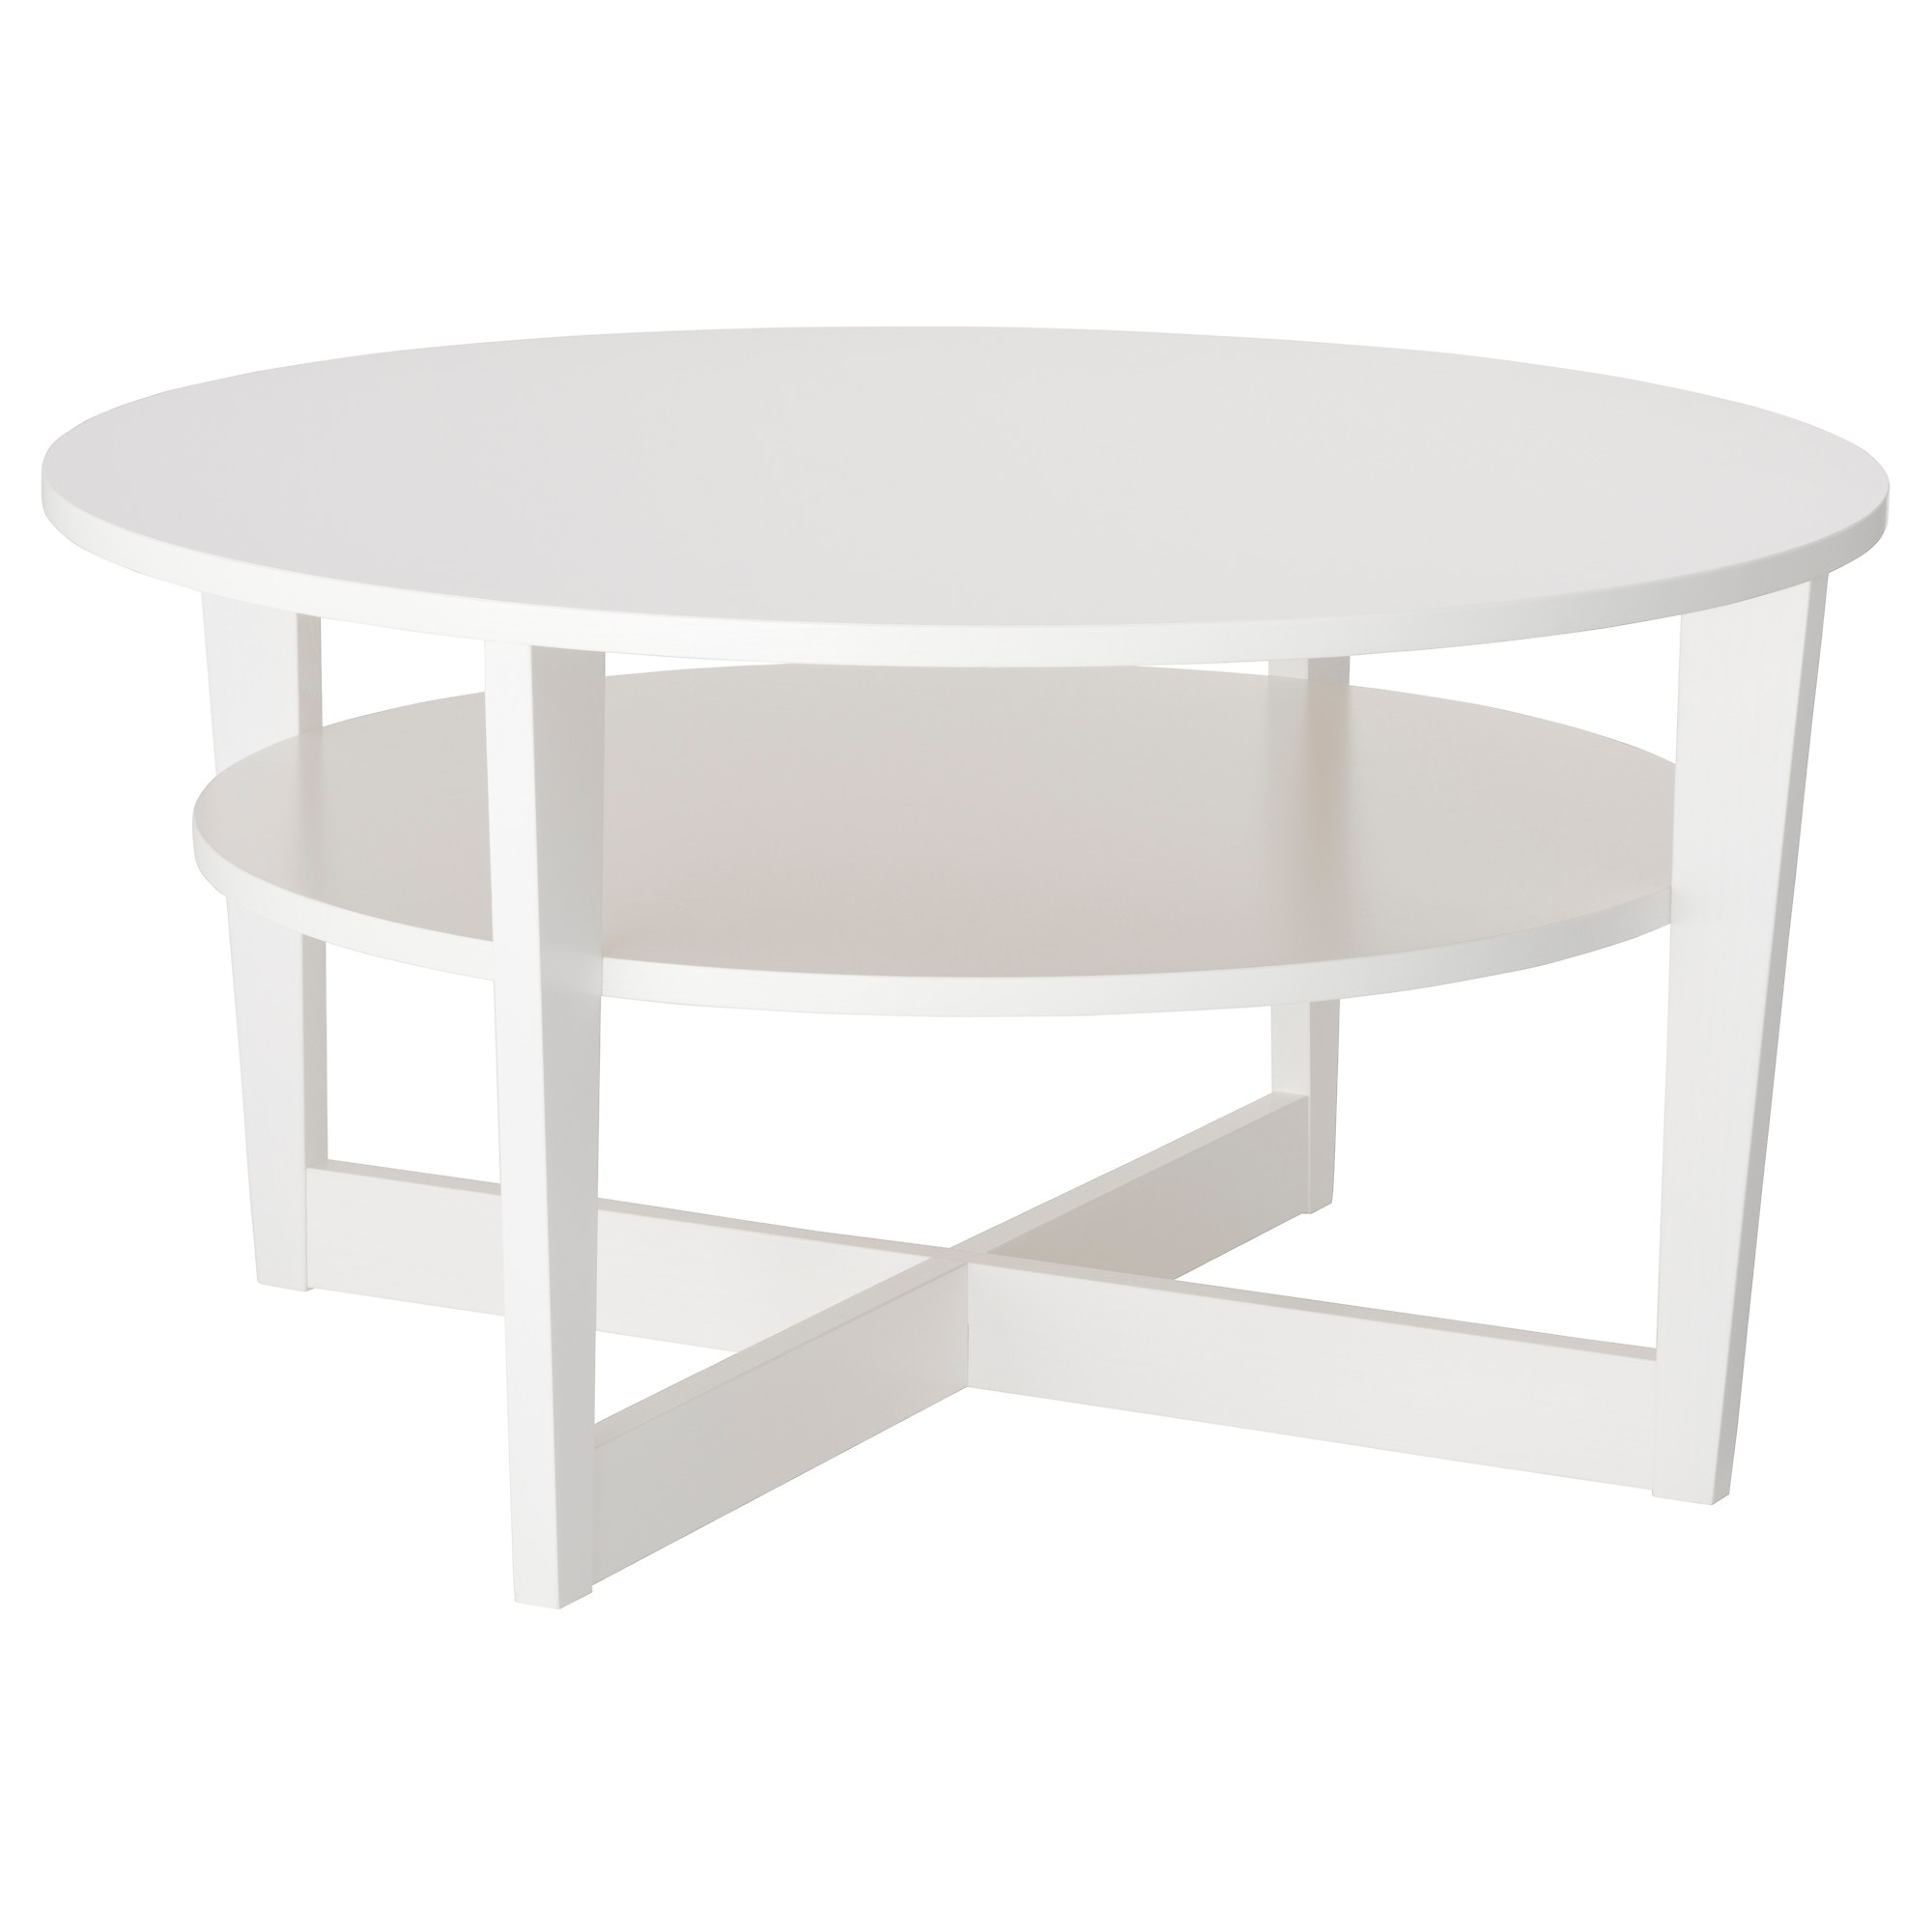 White Coffee Table Ikea Liatorp Coffee Table White Glass Ikea Hemnes Coffee Table White Stain